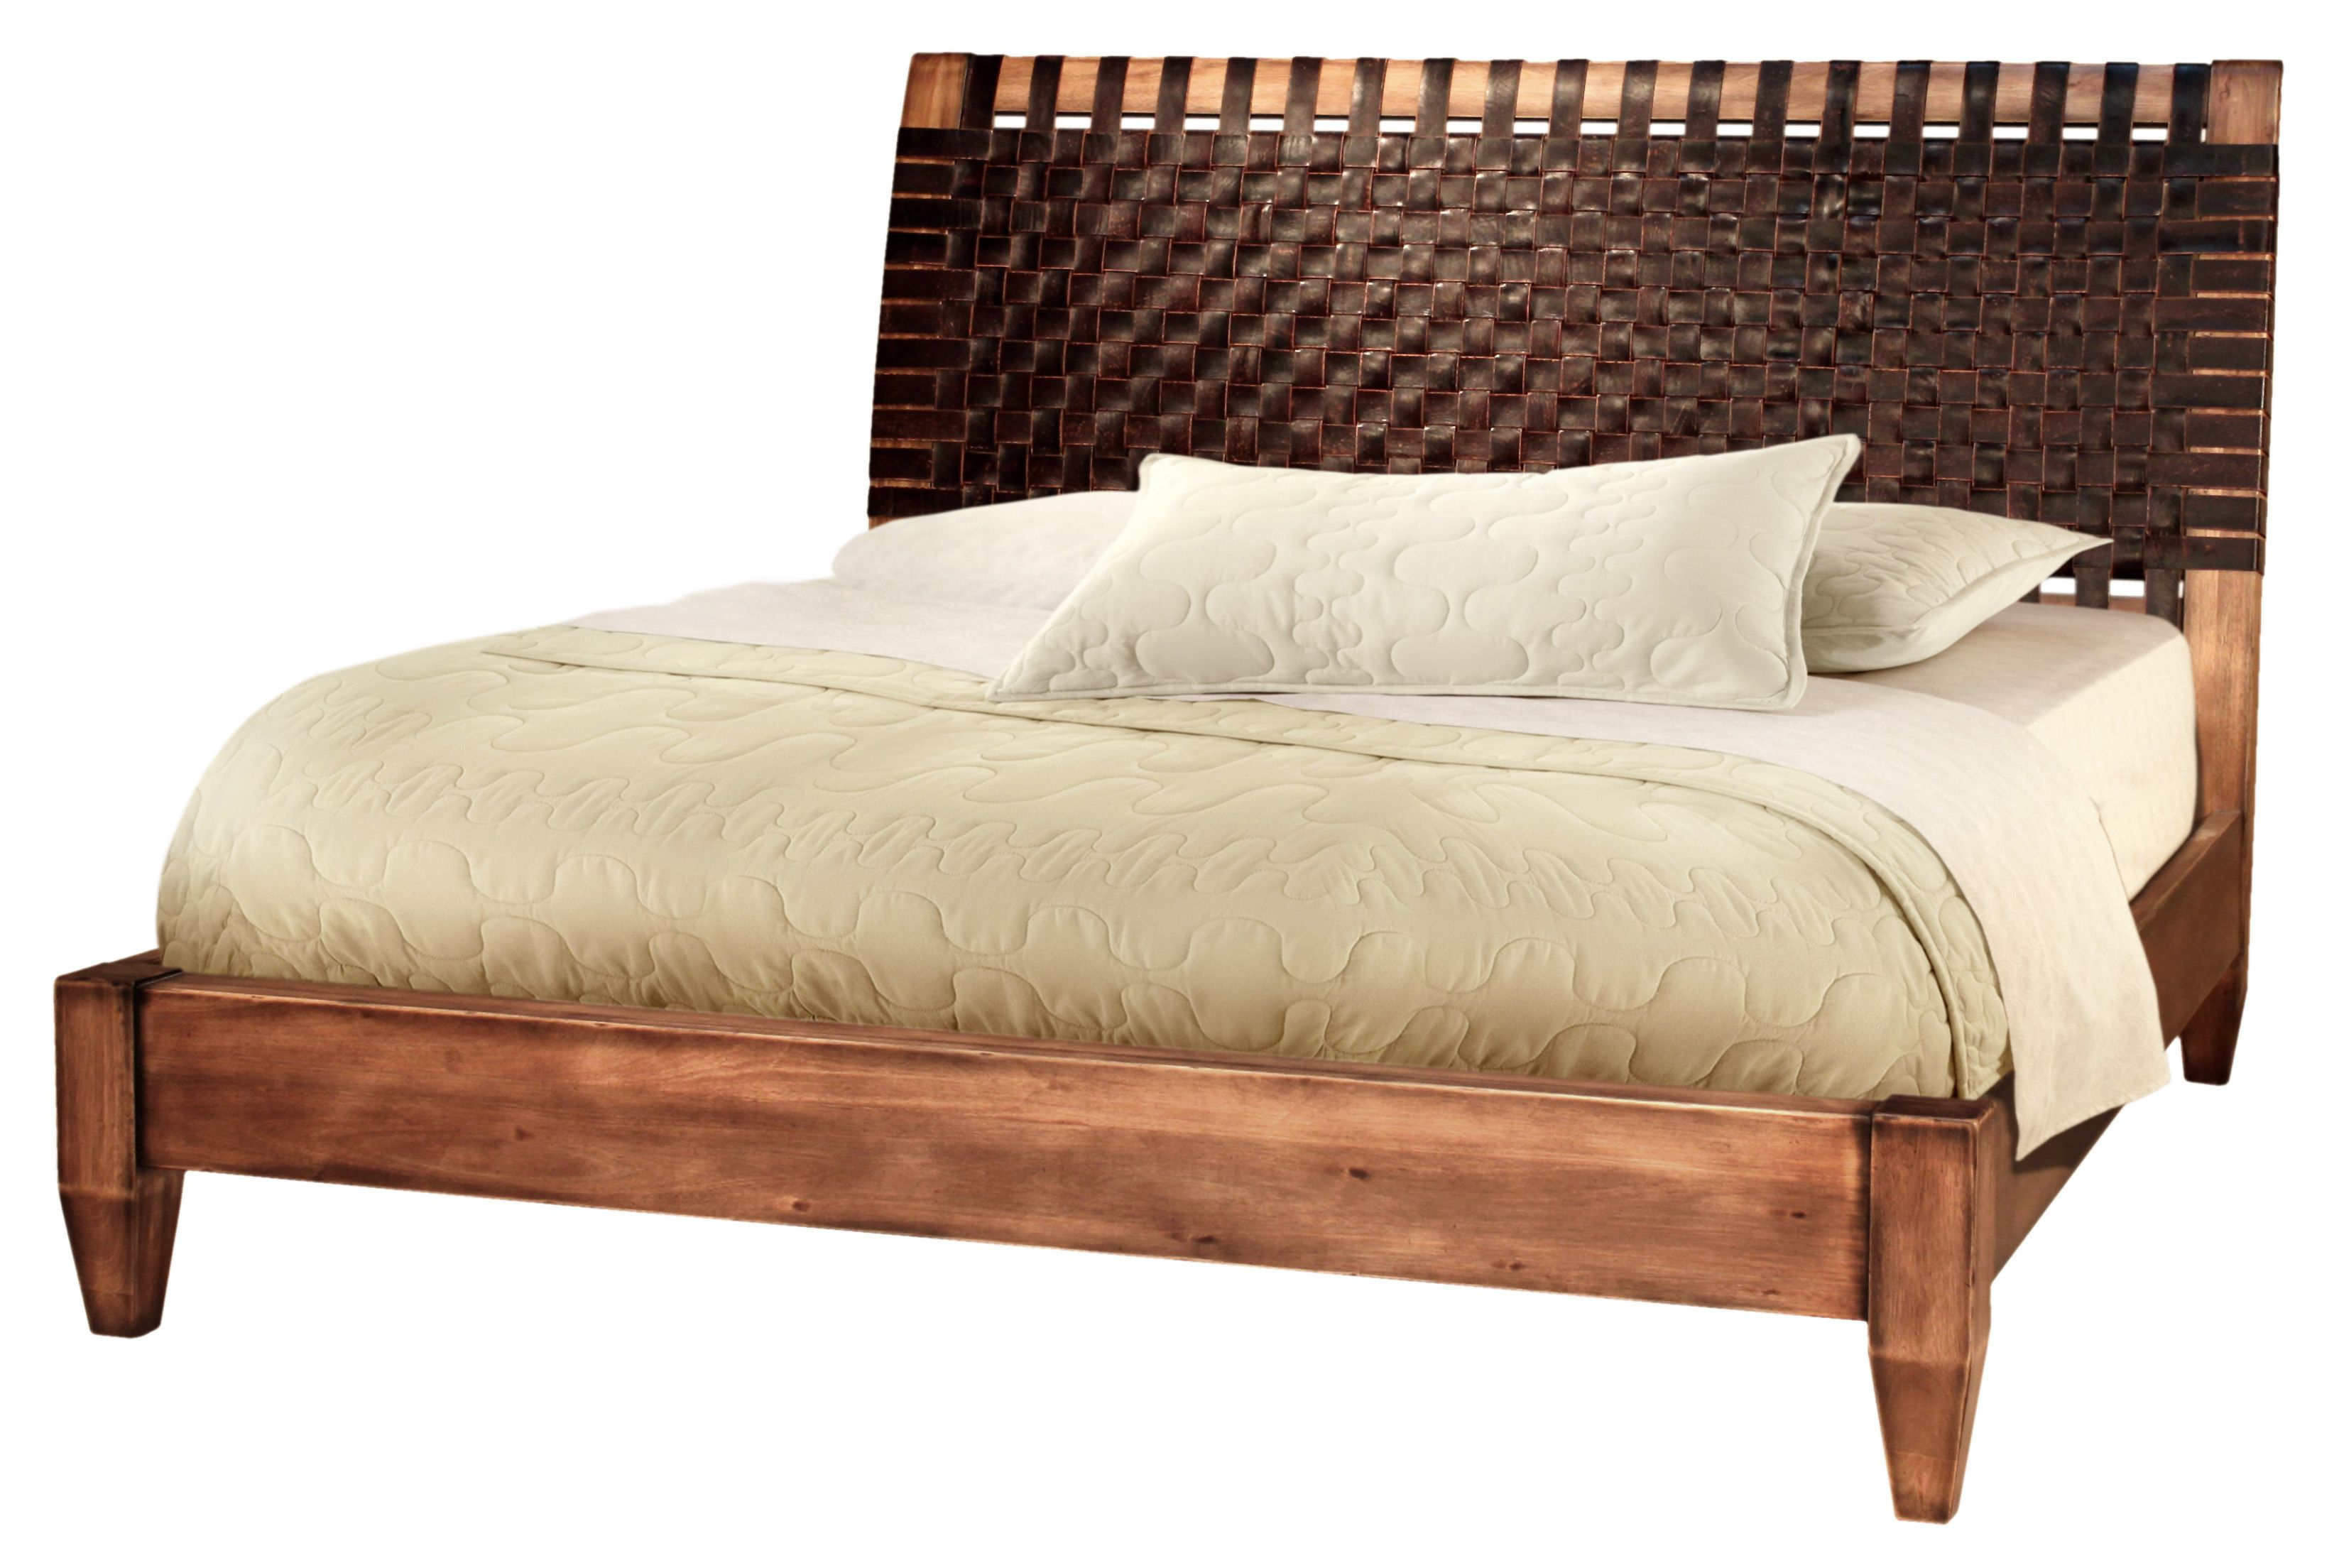 designs wood low profile bed frame queen size with unique headboard ...